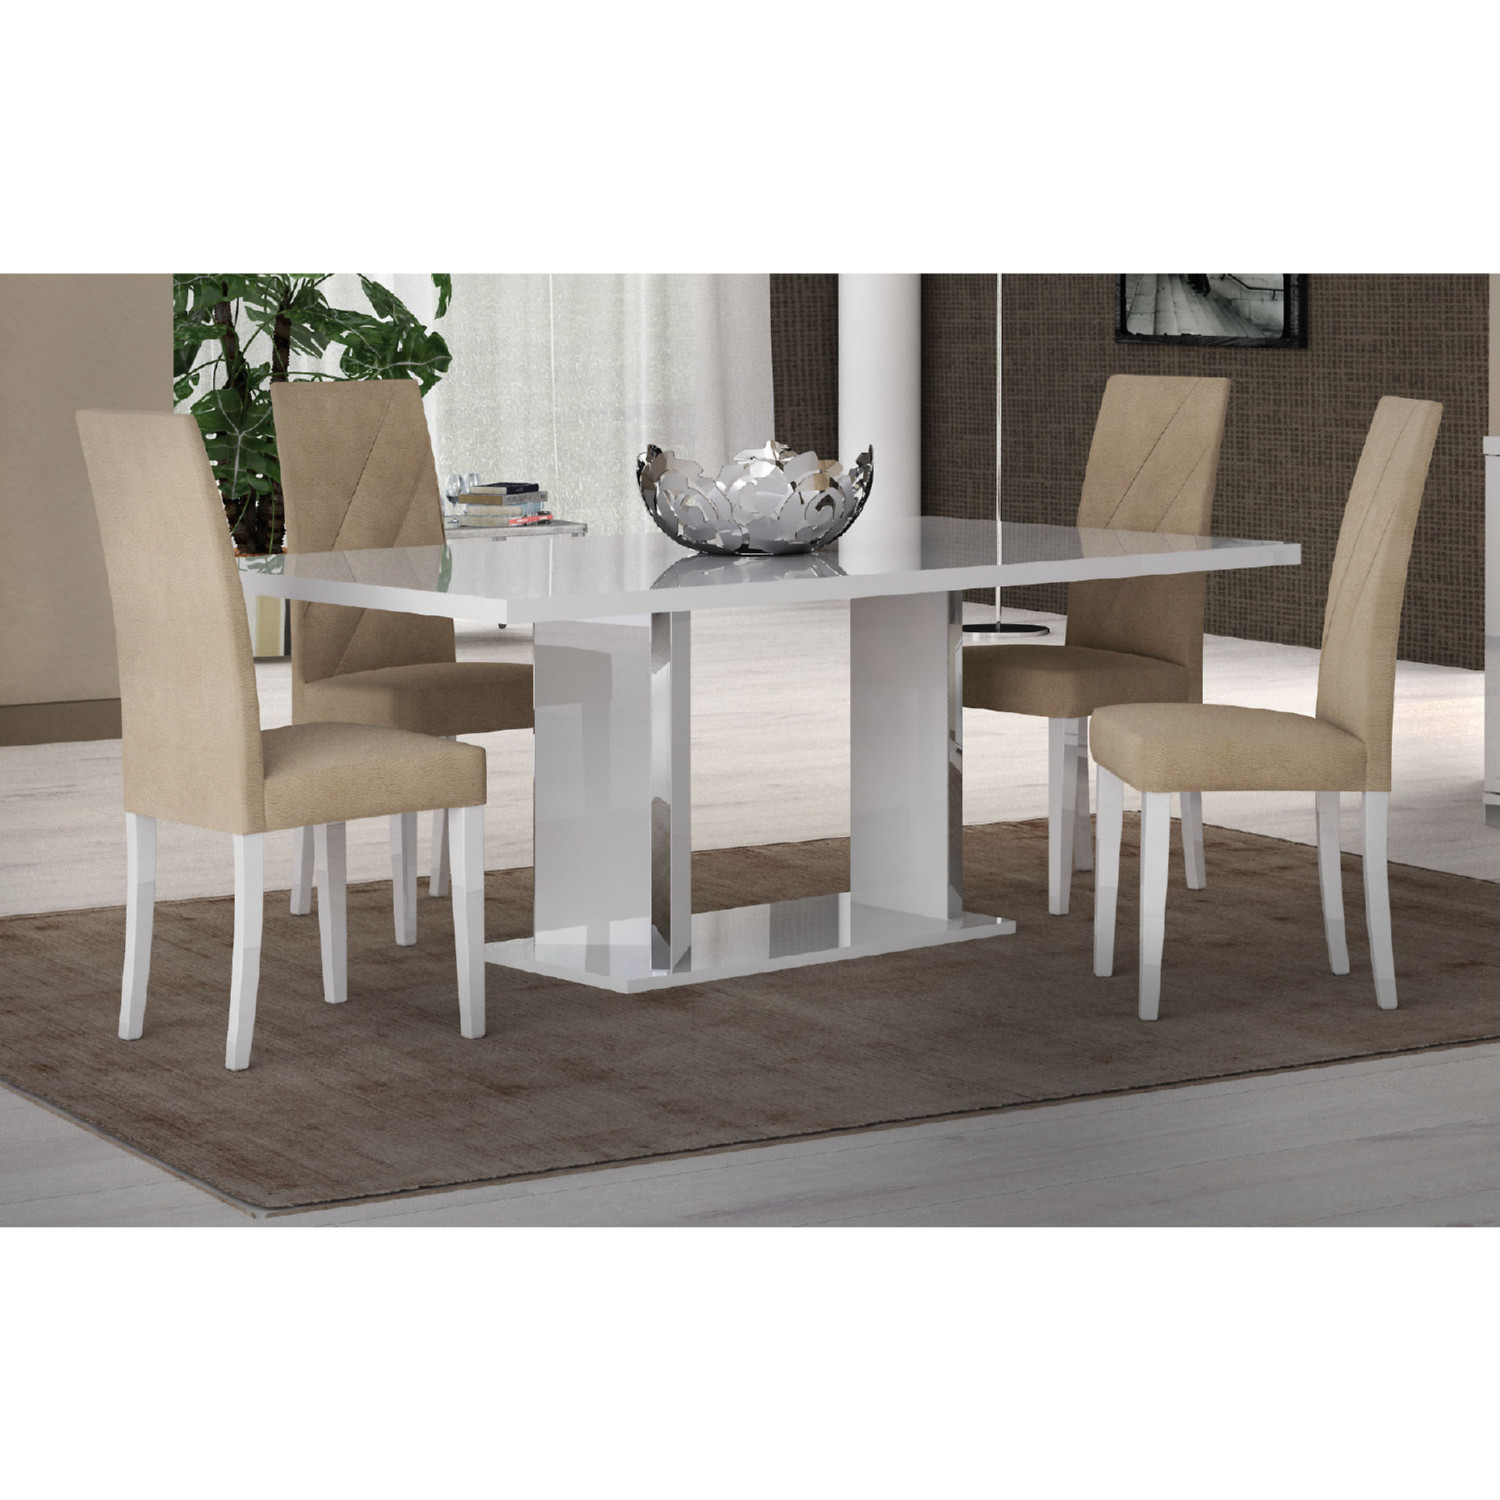 Groovy Lisa Dining Chair In Beige By Esf Furniture Imports Andrewgaddart Wooden Chair Designs For Living Room Andrewgaddartcom